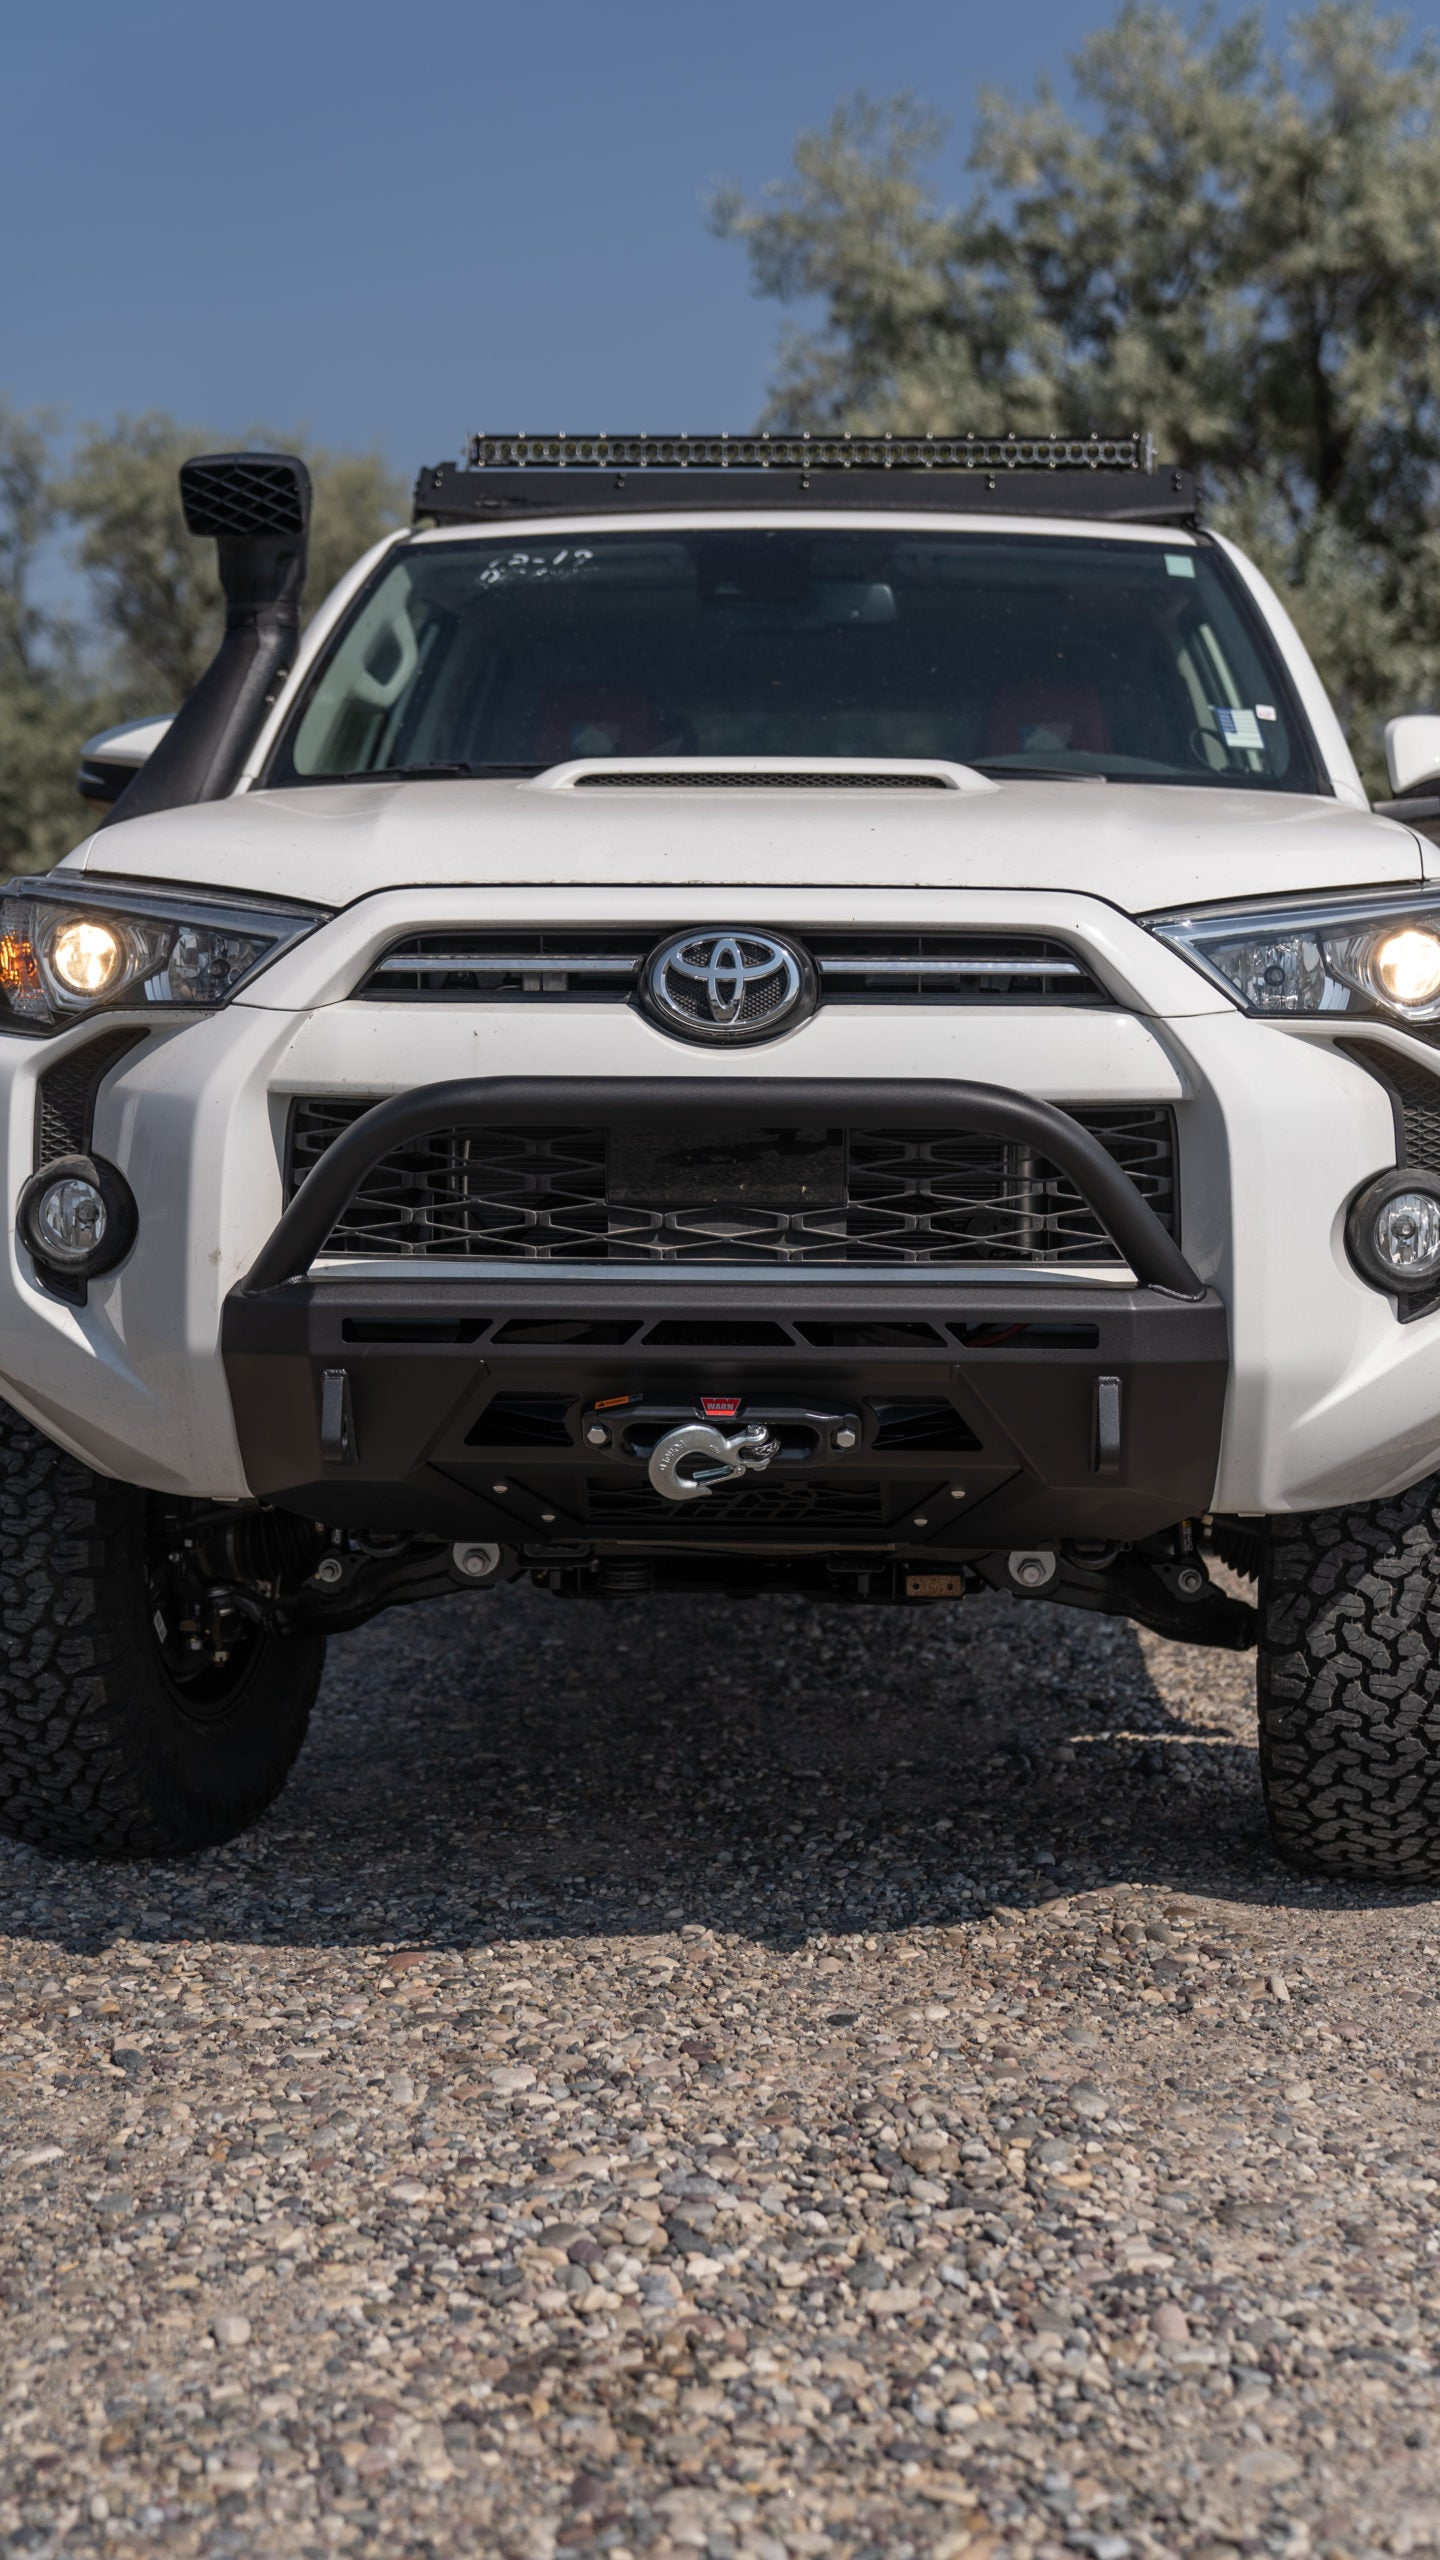 CBI - Covert Baja Series Front Bumper - Toyota 4Runner 5th Gen 2014-2021 - 4x4 Runners